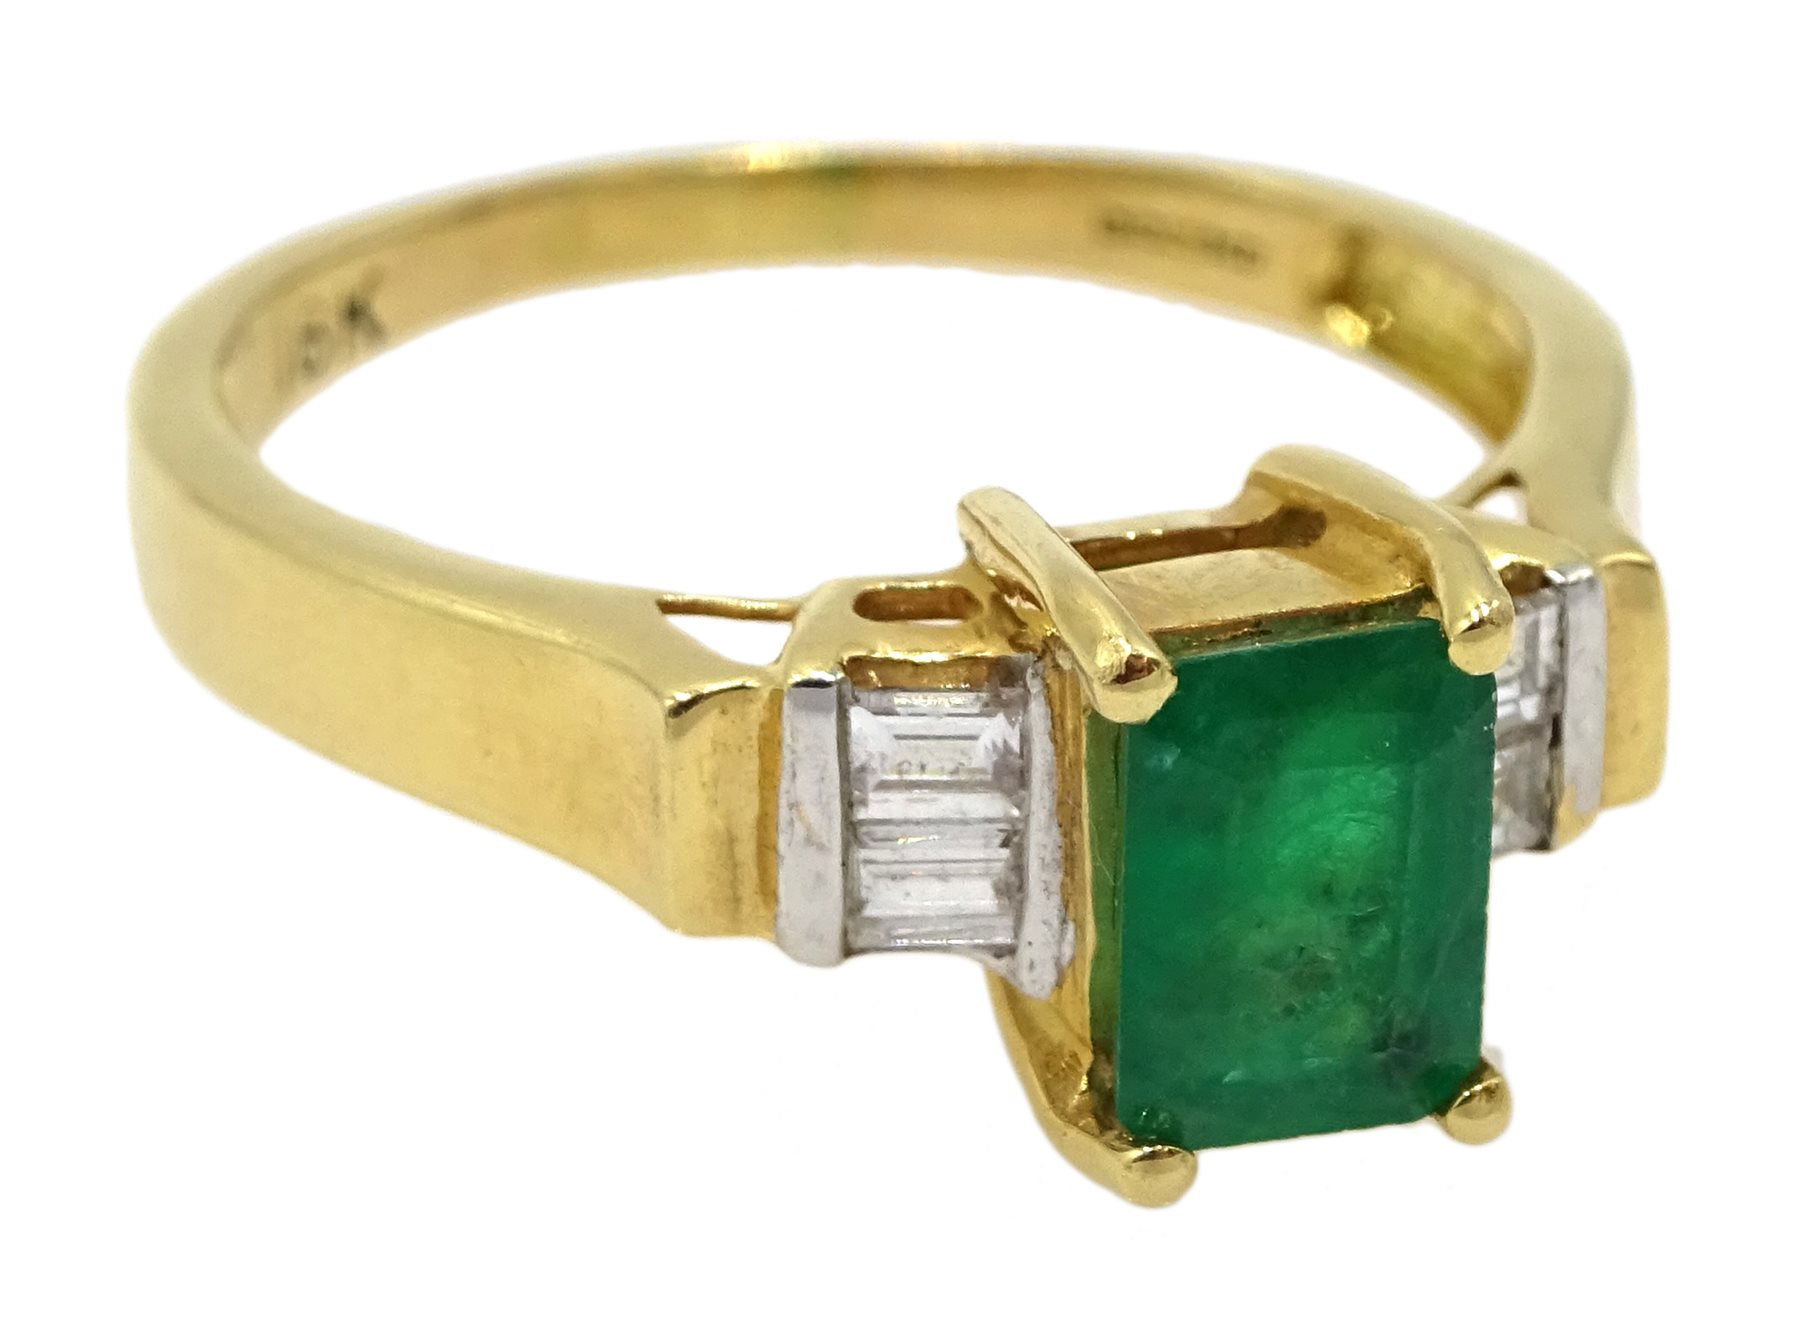 18ct gold emerald ring - Image 3 of 4